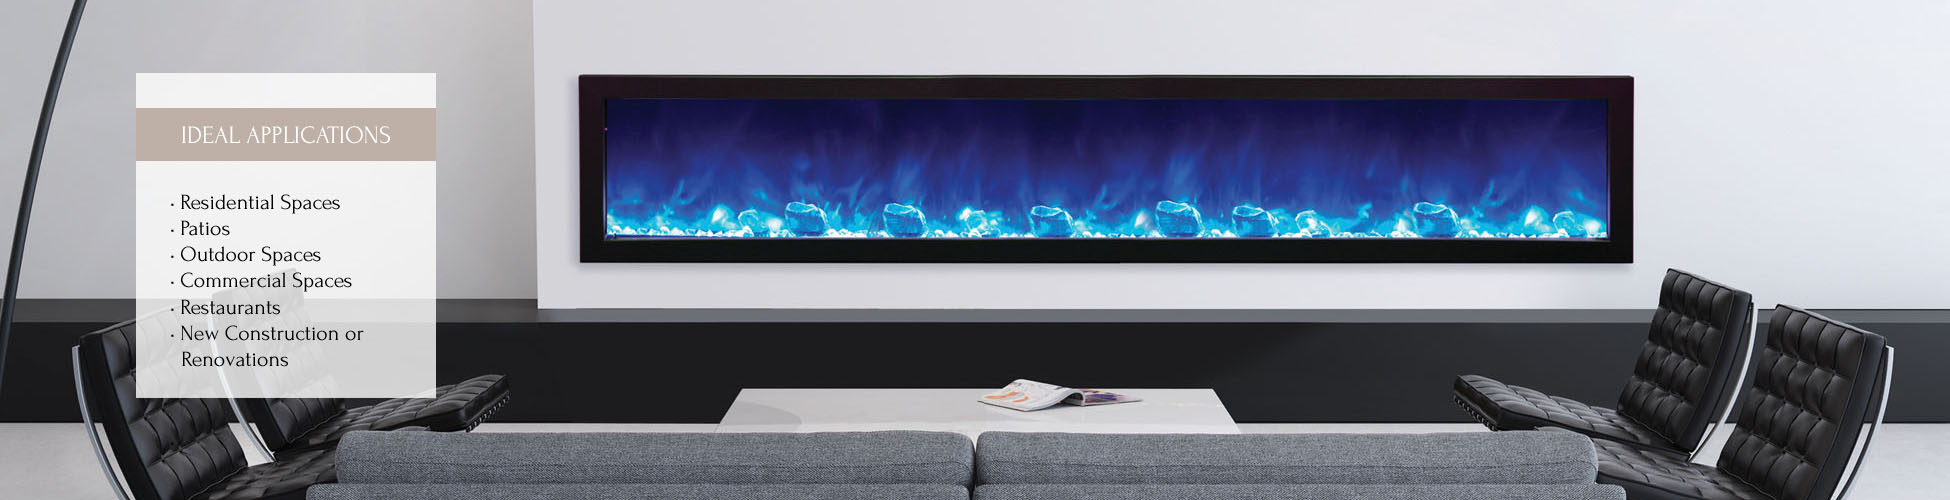 BI-88-SLIM electric fireplace by Amantii